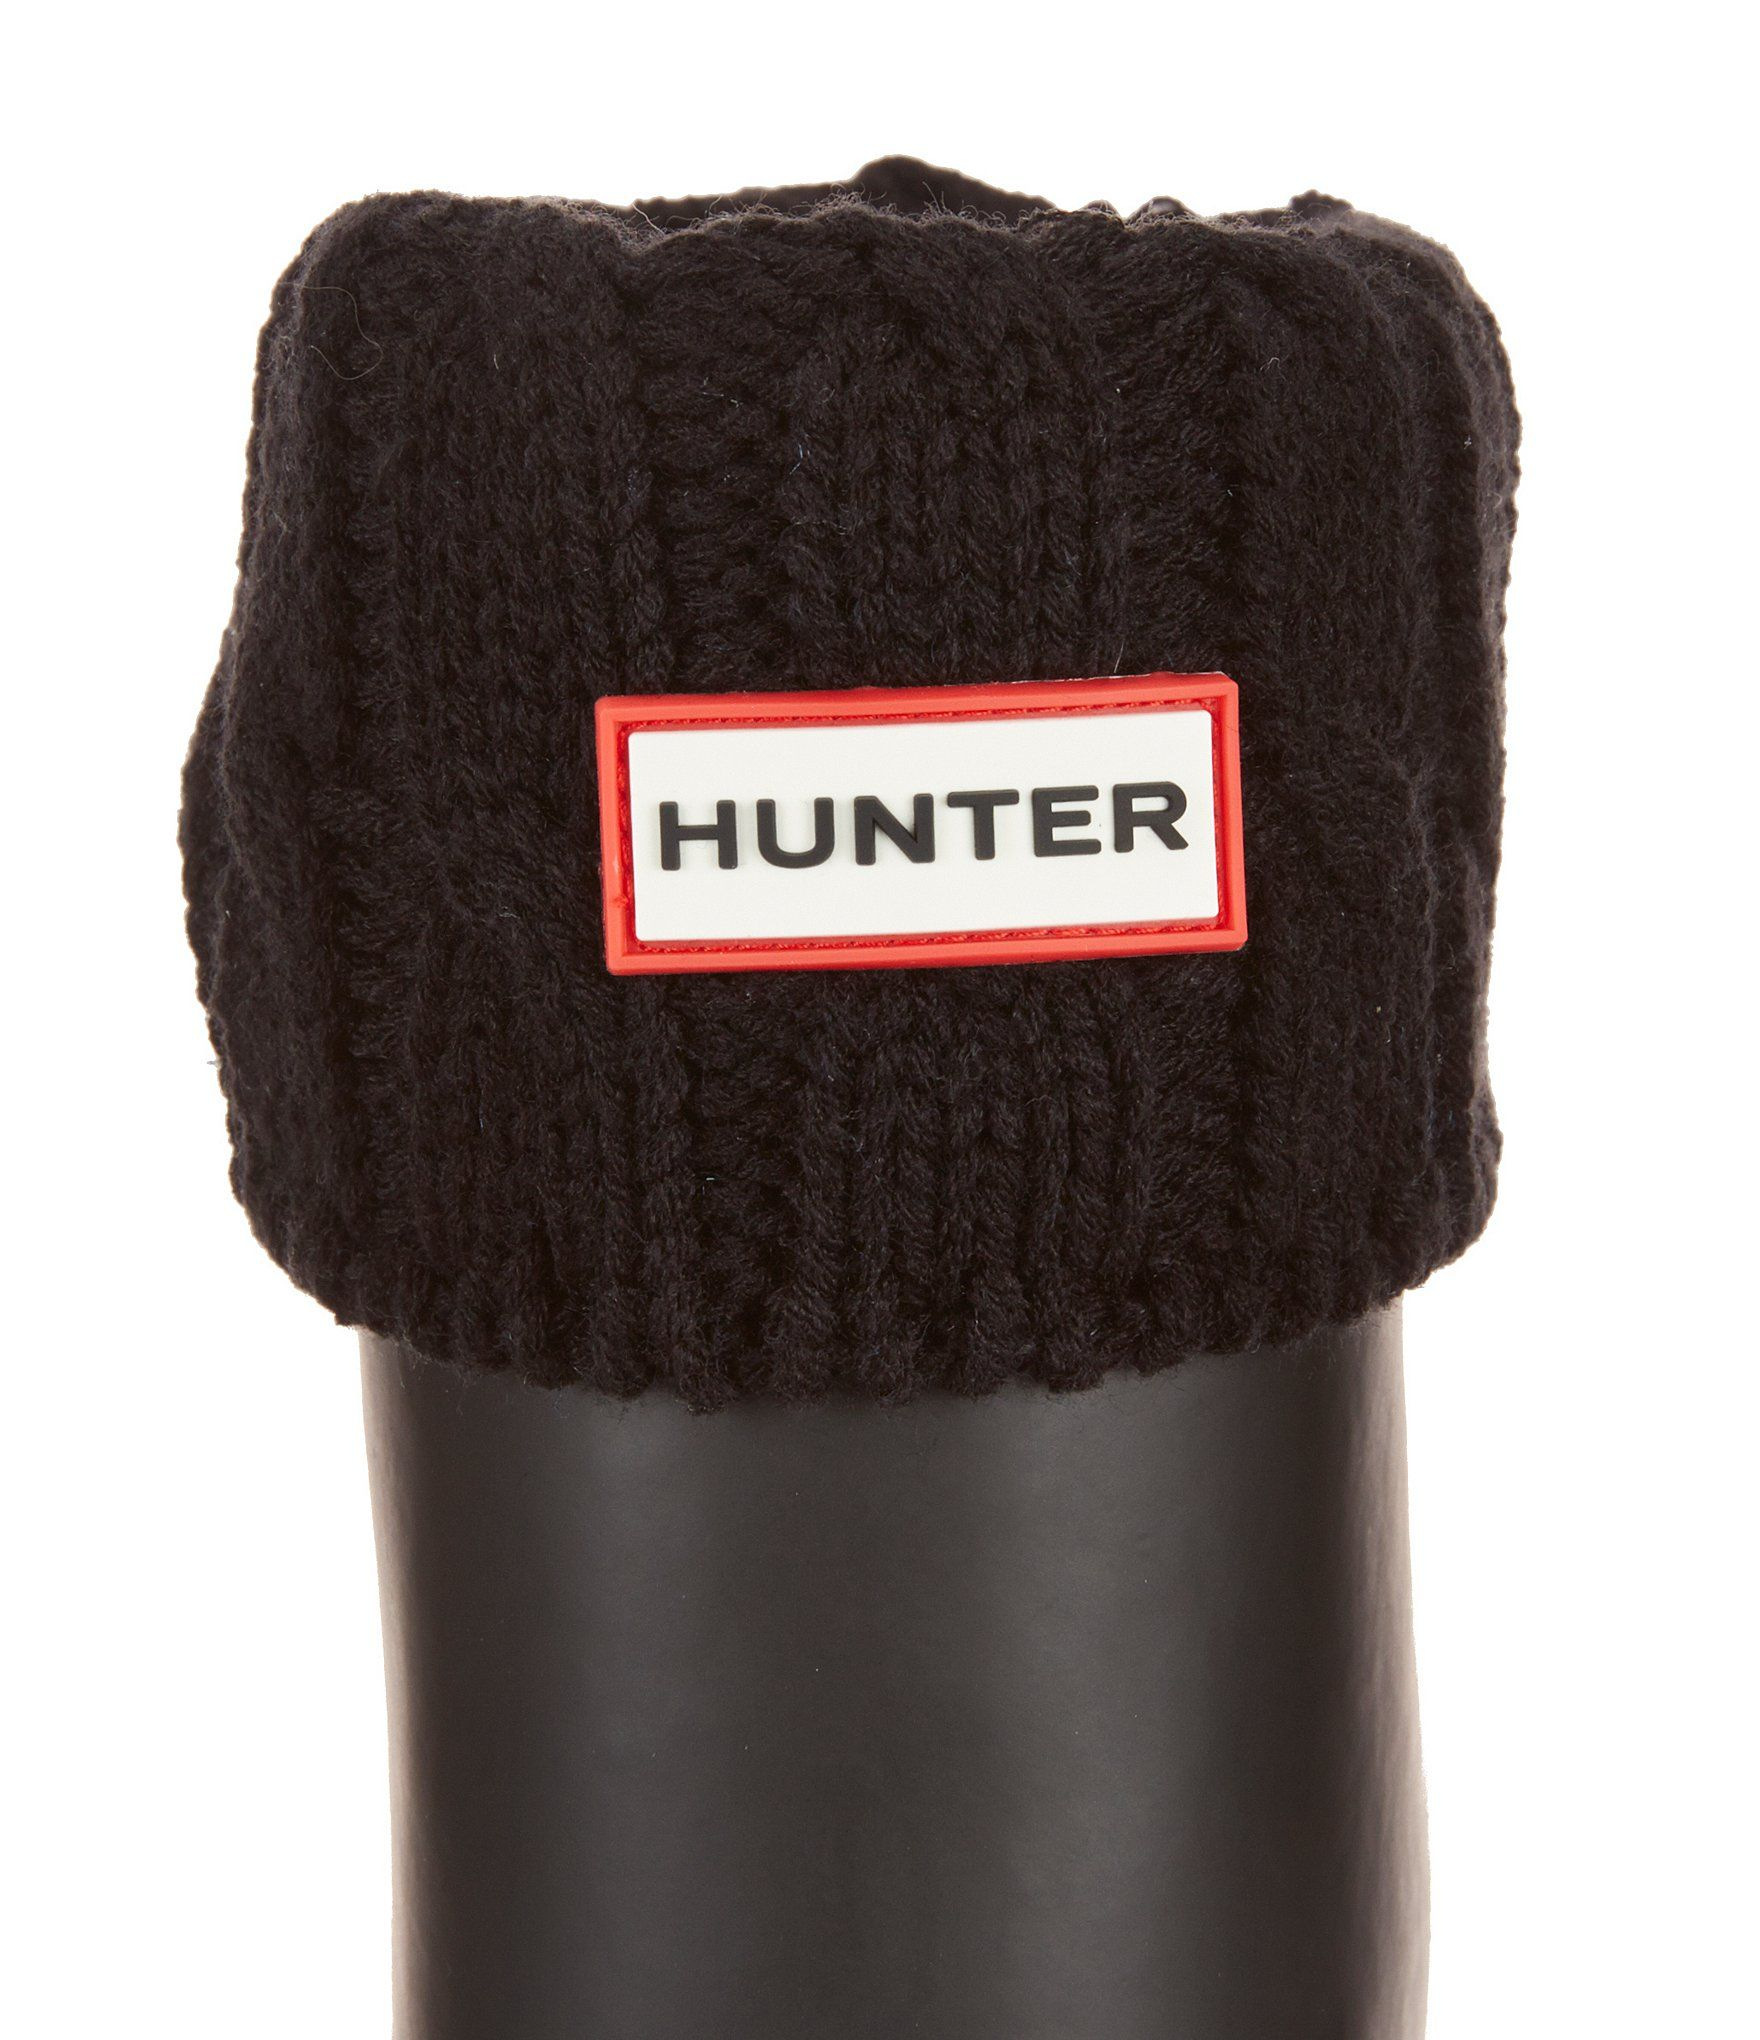 From Hunter Original, the Six-Stitch cable tall boot socks feature:    microfleece with contrast six-stitch cable knit cuff  polyfleece leg  can be worn folded over to add contrast detail  designed to enhance the fit of the Original Tall rain boots  presented in exclusive Hunter packaging  polyester, acrylic  machine wash Imported.